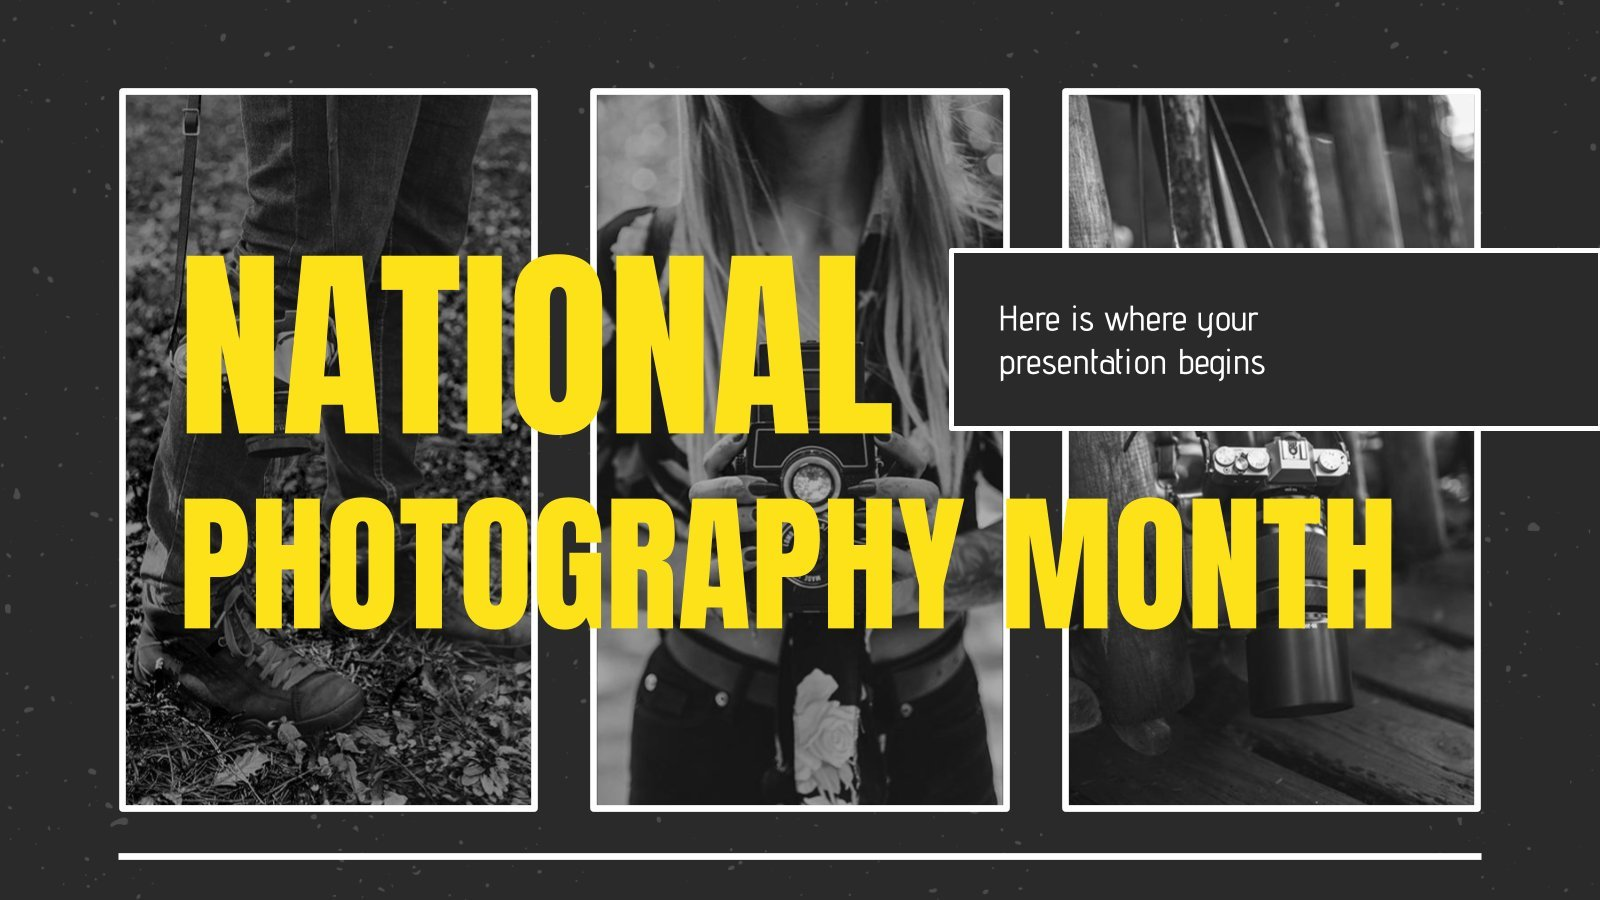 National Photography Month presentation template